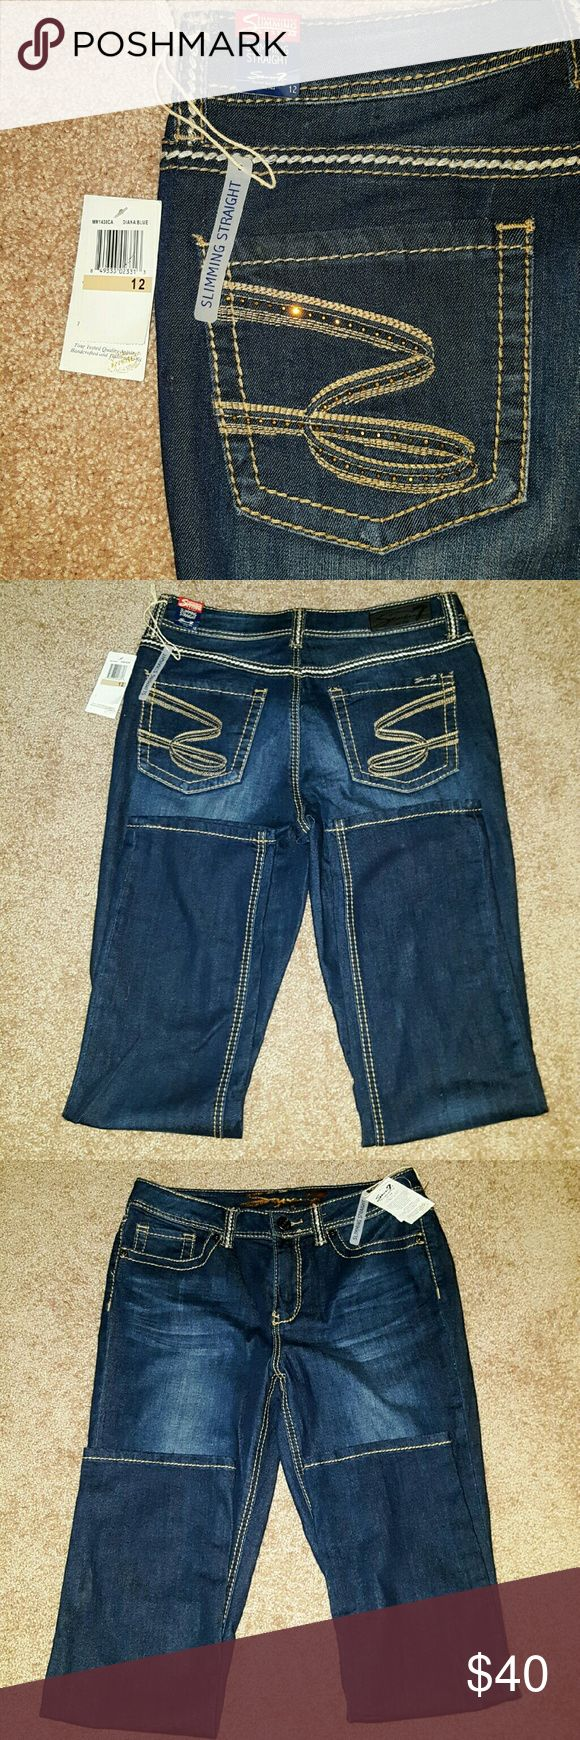 how to tell if seven jeans are real